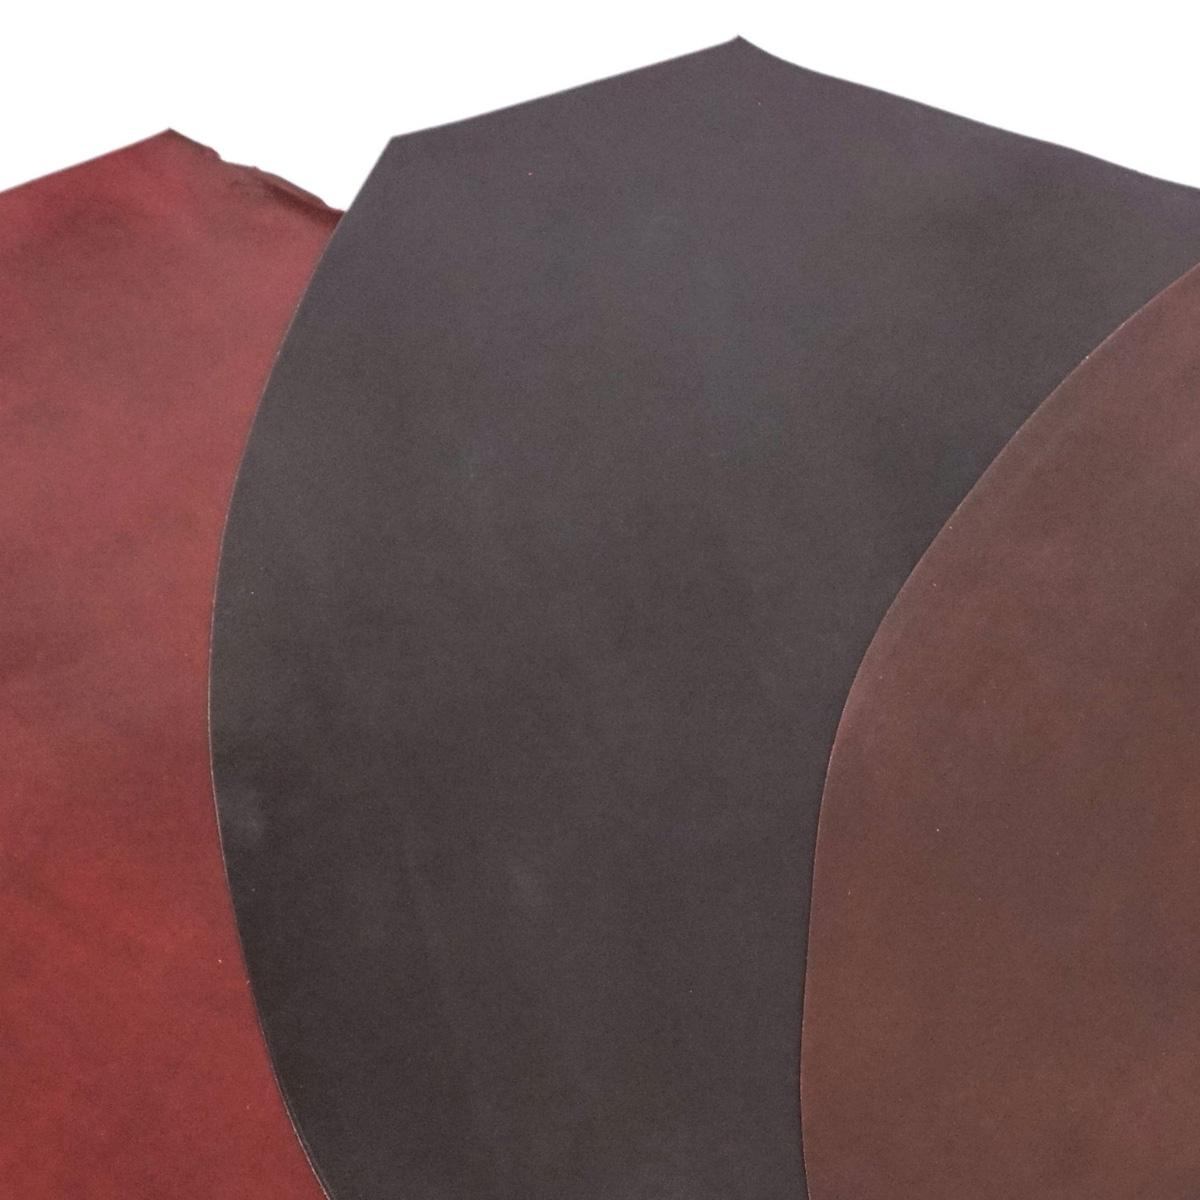 3 shell cordovan pieces in black, brown, and burgundy